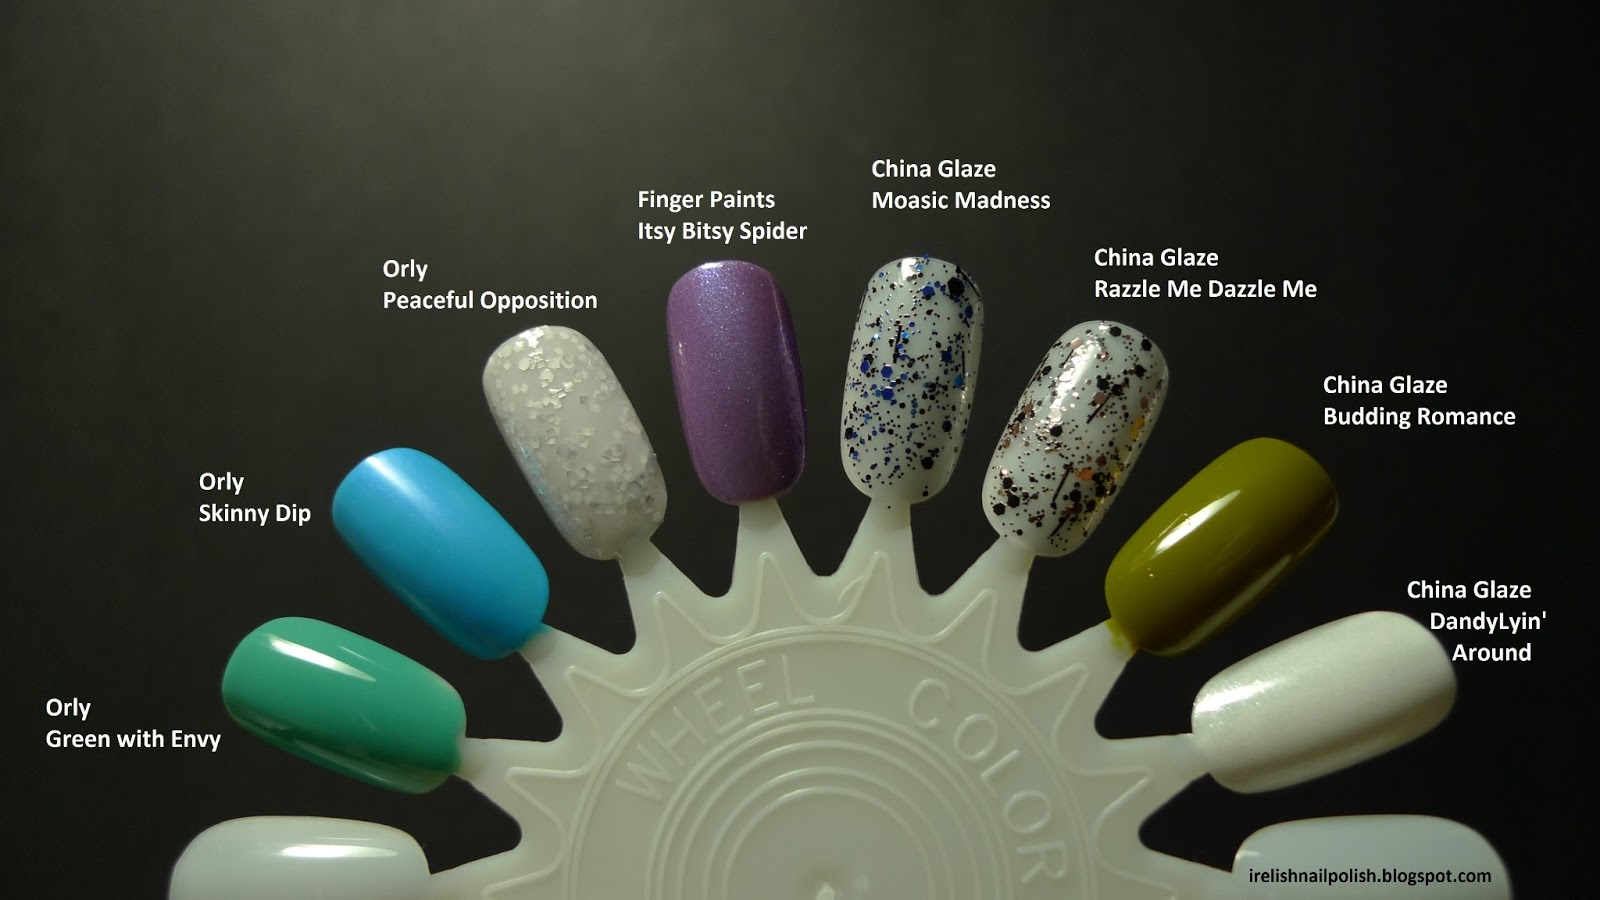 I relish nail polish orly green with envy and haul swatches below are swatches on a nail wheel as they are with no top coat geenschuldenfo Image collections